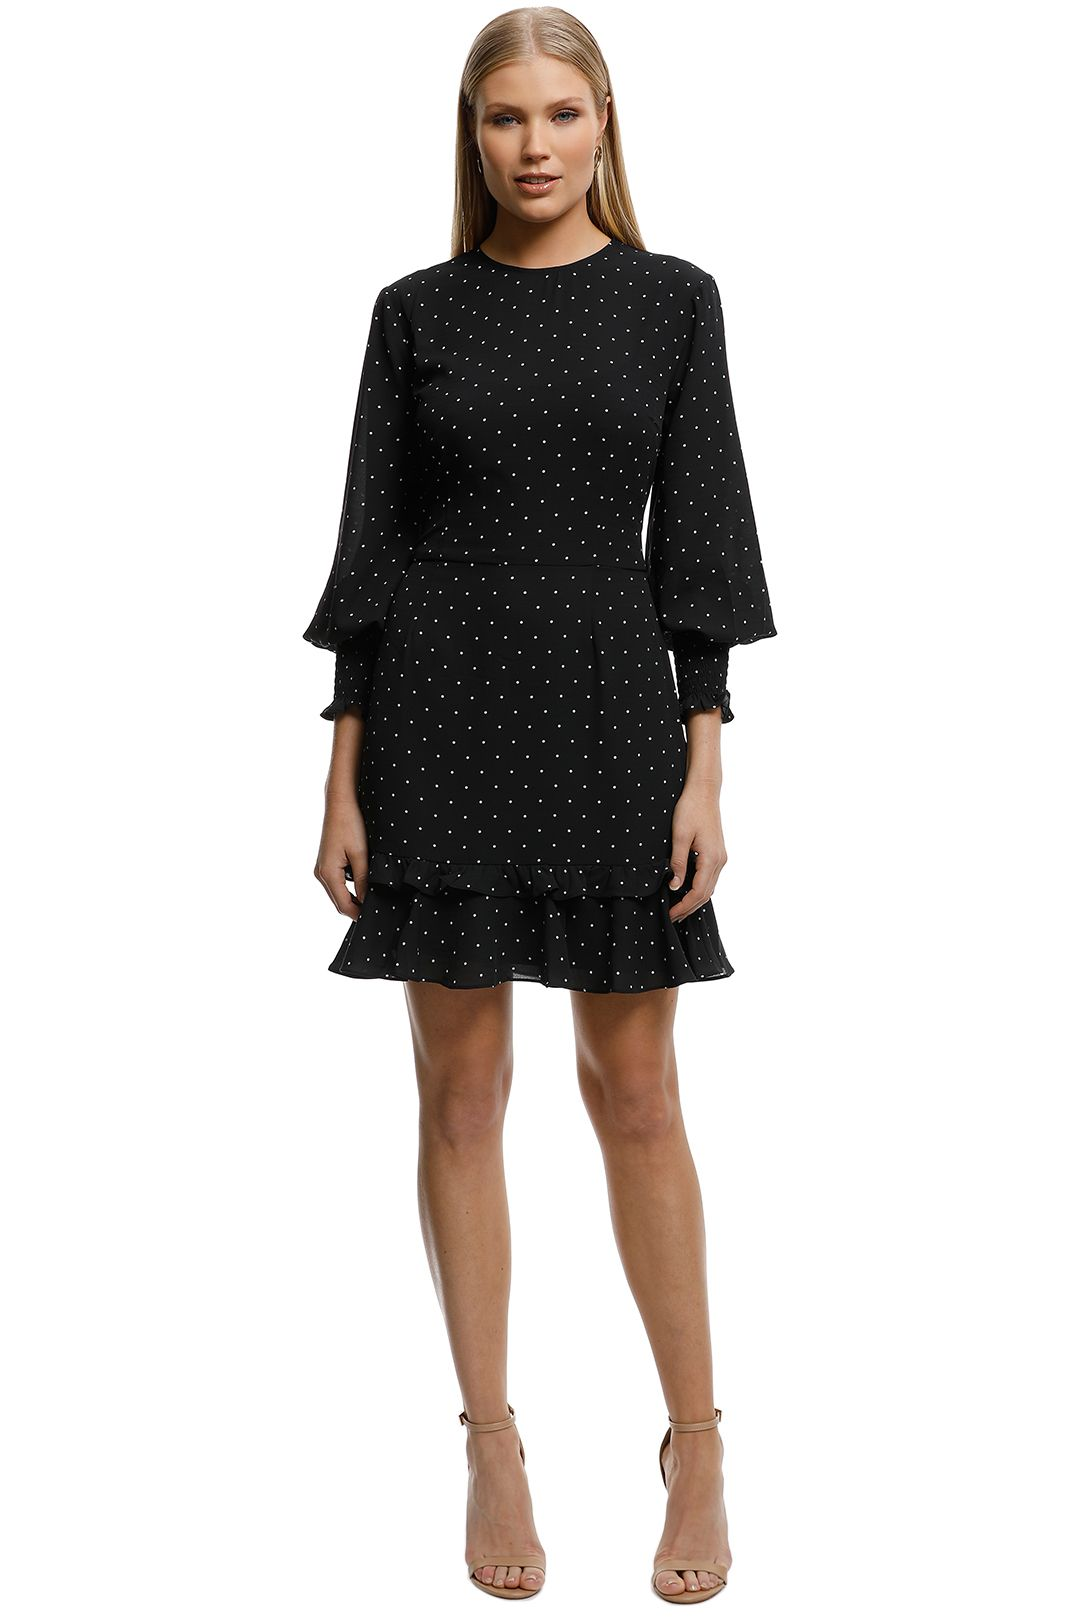 Cooper St-Portia Long Sleeve Mini Dress-Polkadot- Front.